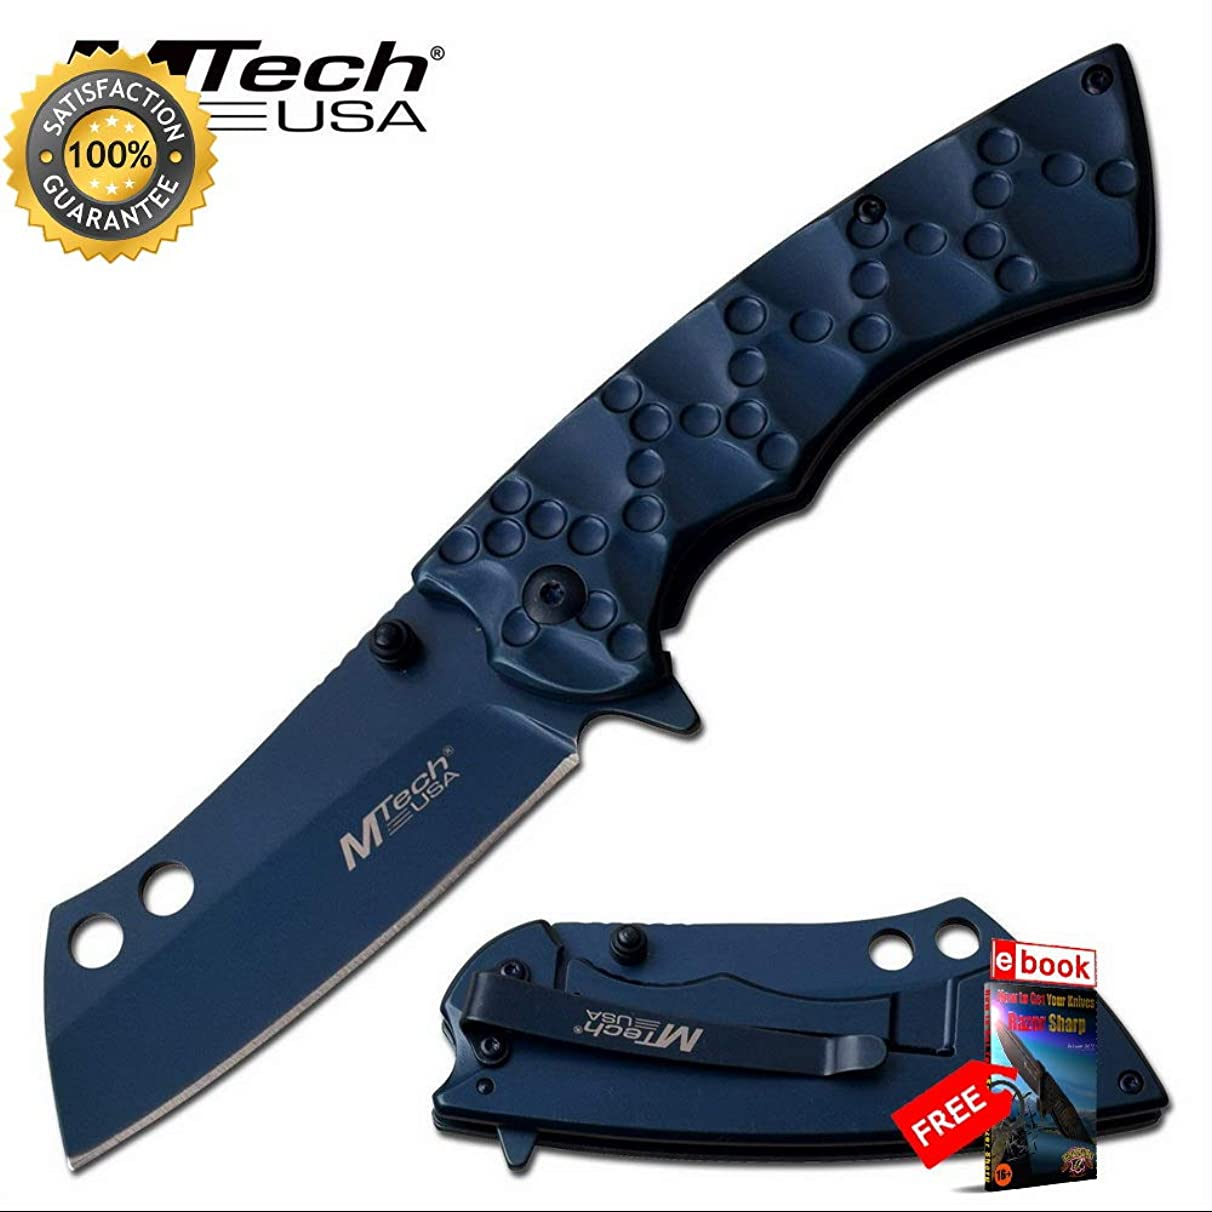 SPRING ASSISTED Folding Sharp KNIFE Mtech 3.25'' Sheepsfoot Blue Cleaver Blade Tactical Combat Tactical Knife + eBOOK by Moon Knives